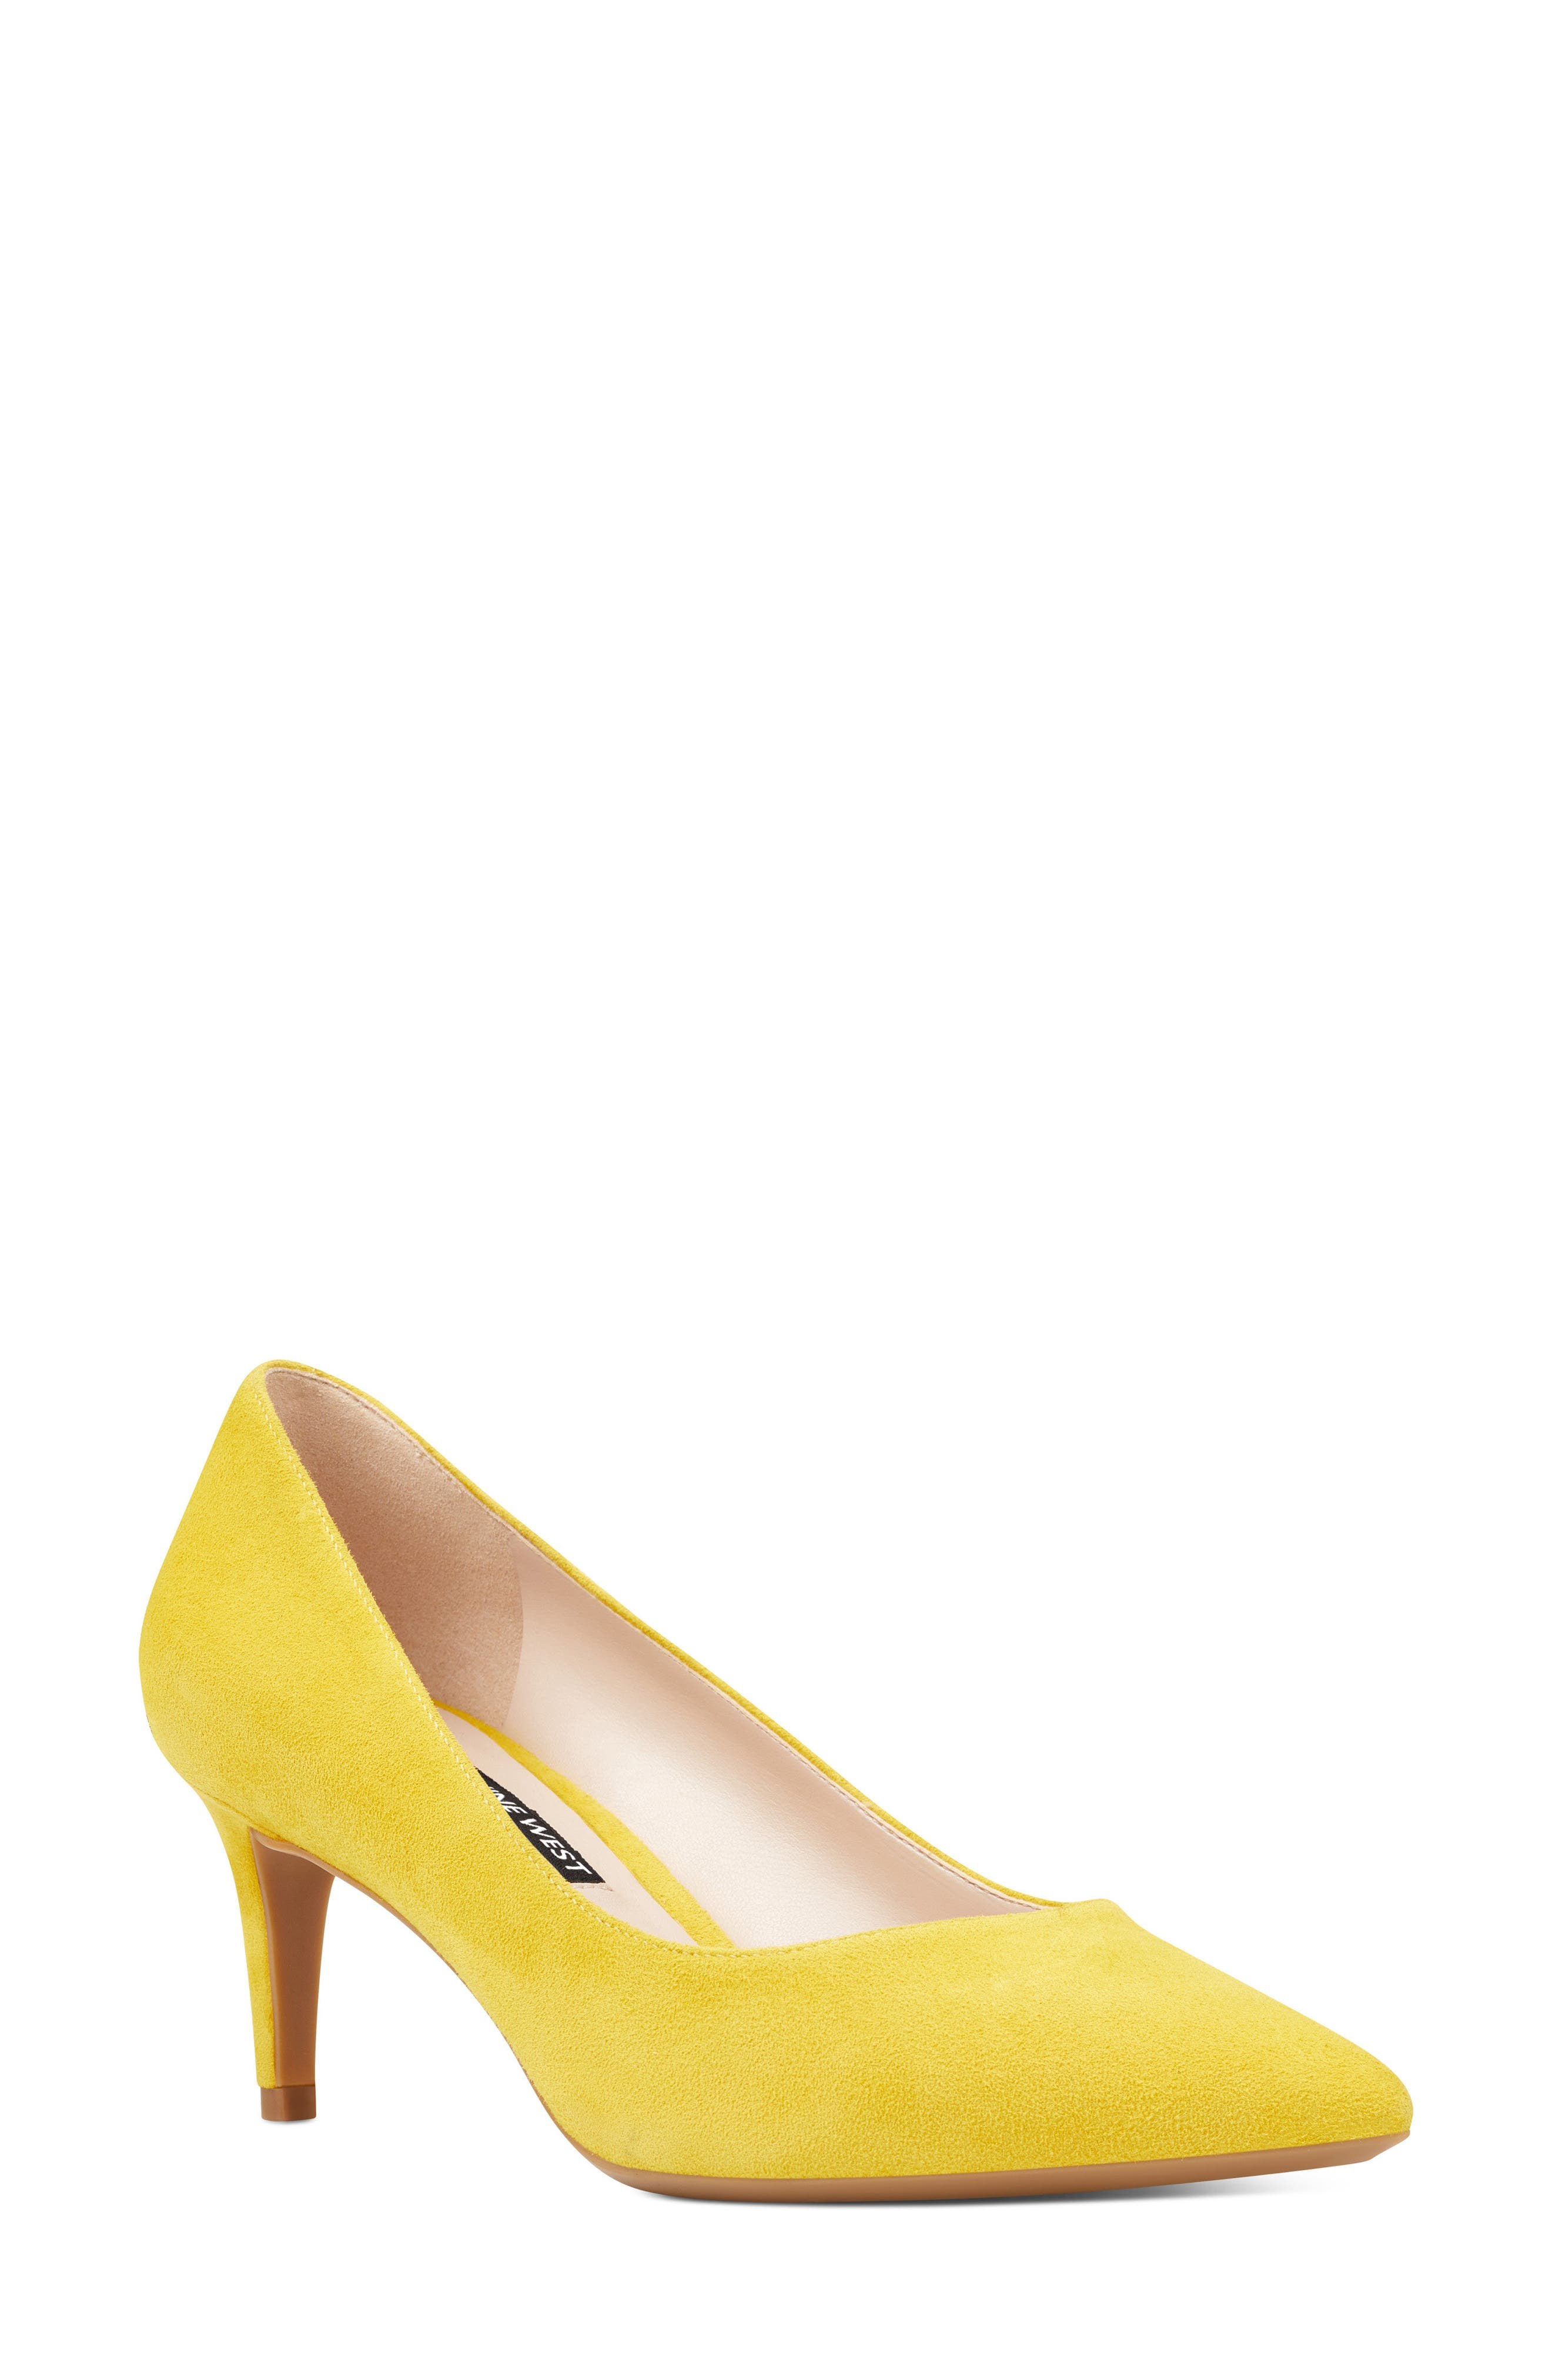 Soho Pointy Toe Pump,                             Main thumbnail 4, color,